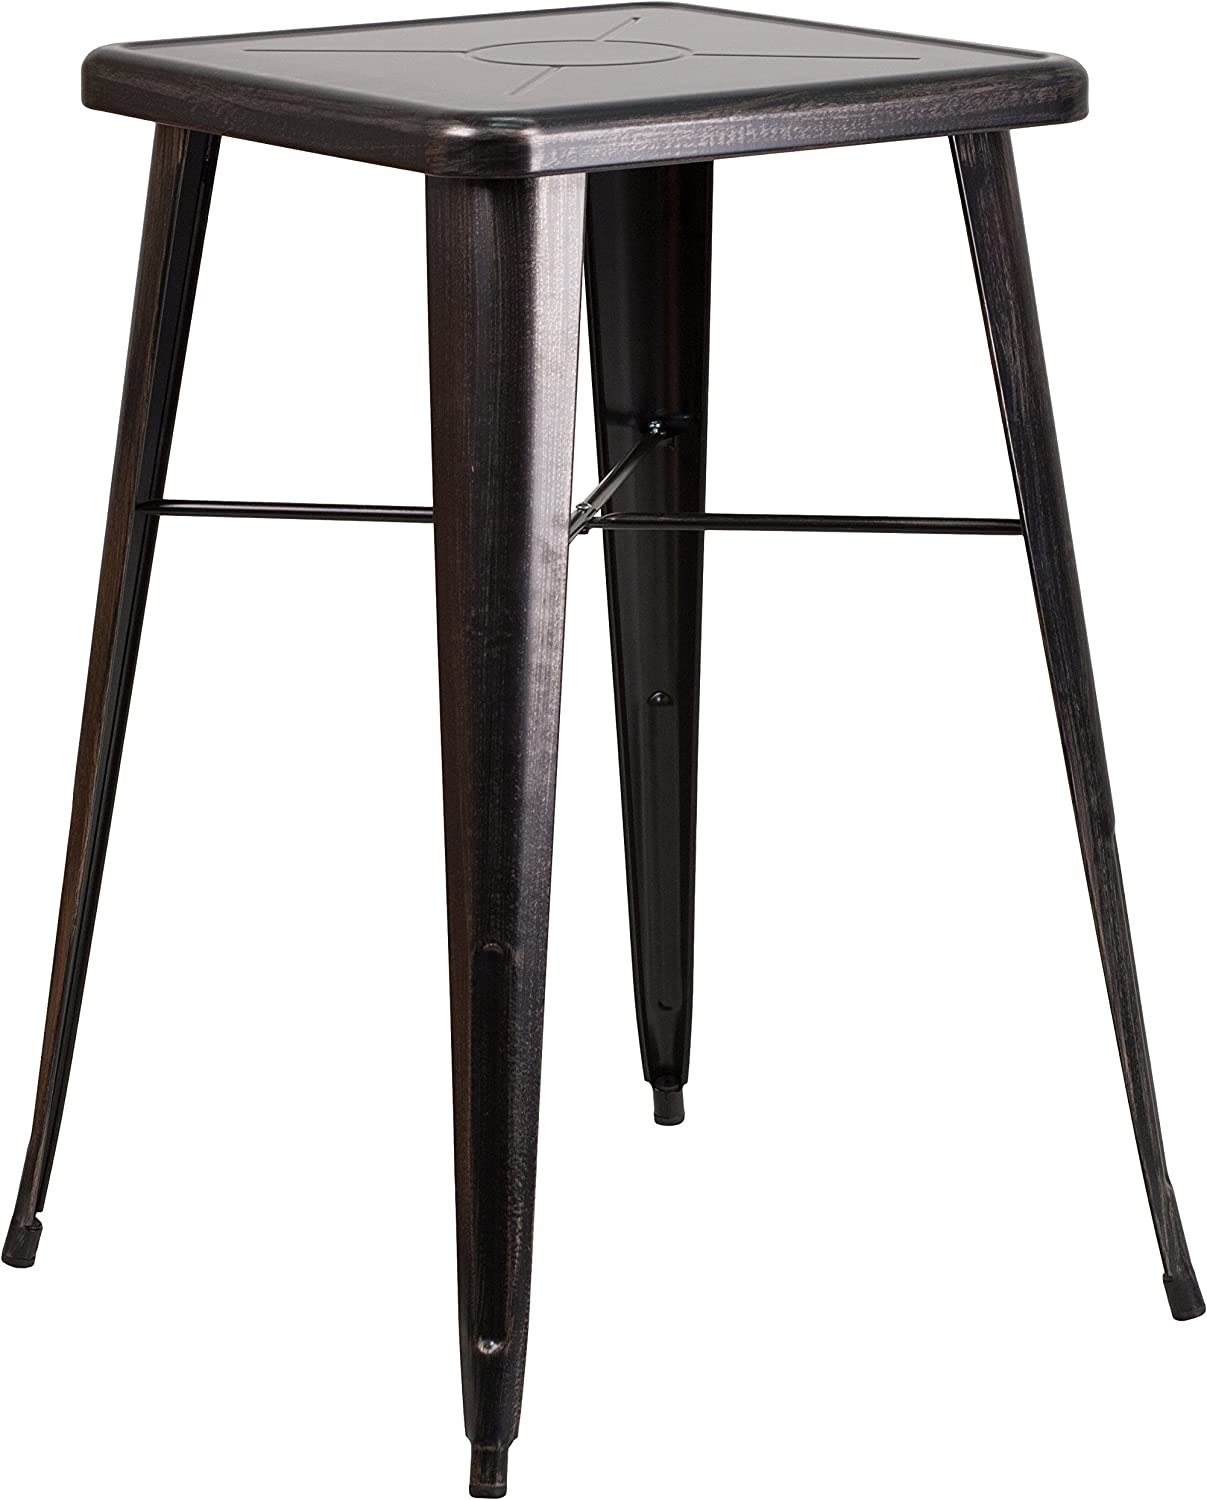 "Flash Furniture Commercial Grade 23.75"" Square Black-Antique Gold Metal Indoor-Outdoor Bar Height Table: Furniture & Decor"